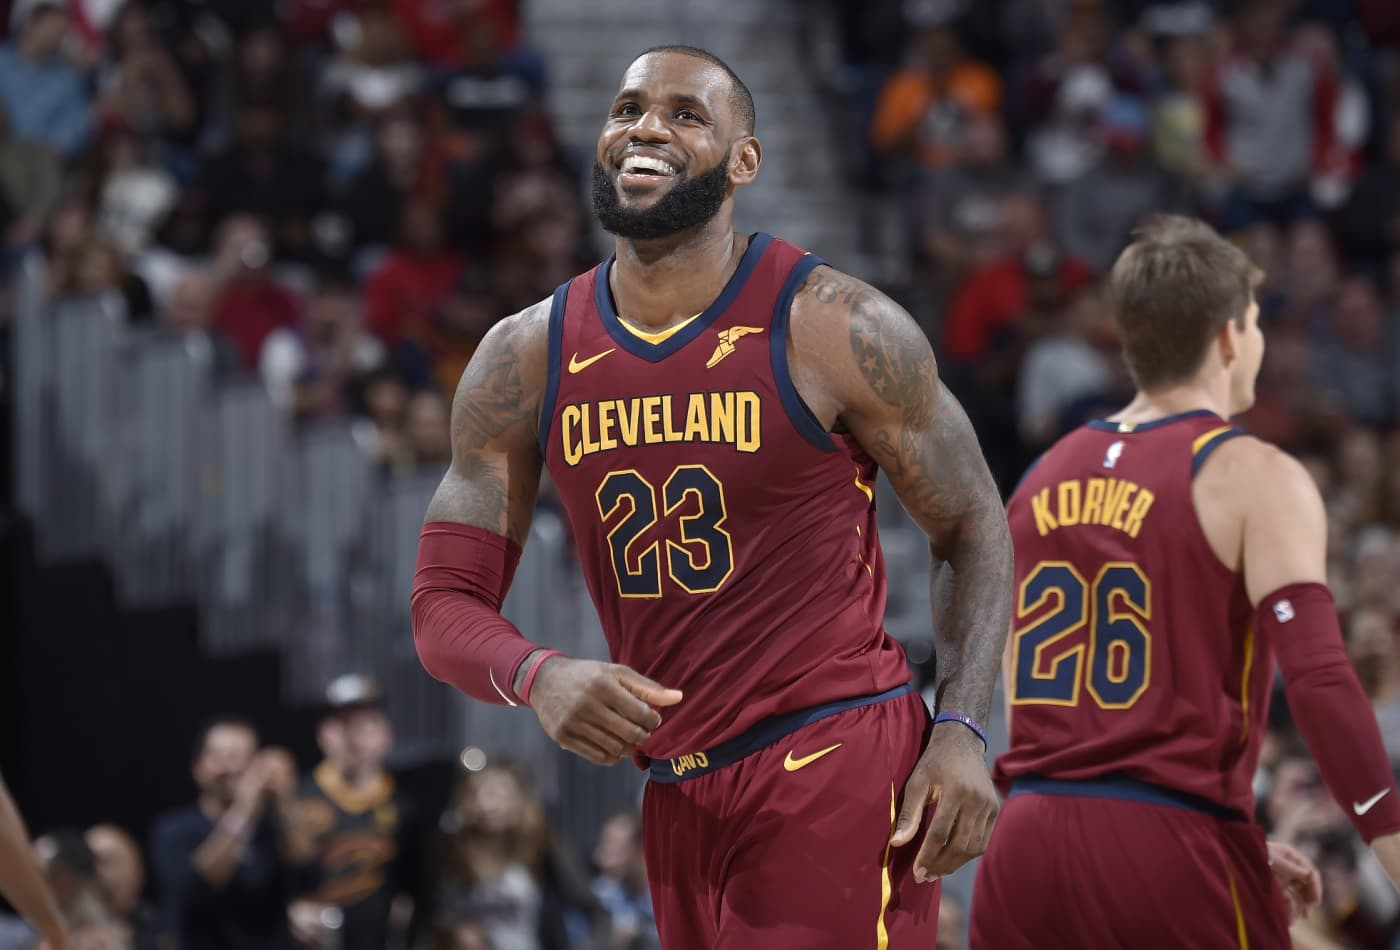 lowest price 17c5b 2e638 LeBron James moving to NBA's Lakers—inside his $23 million ...